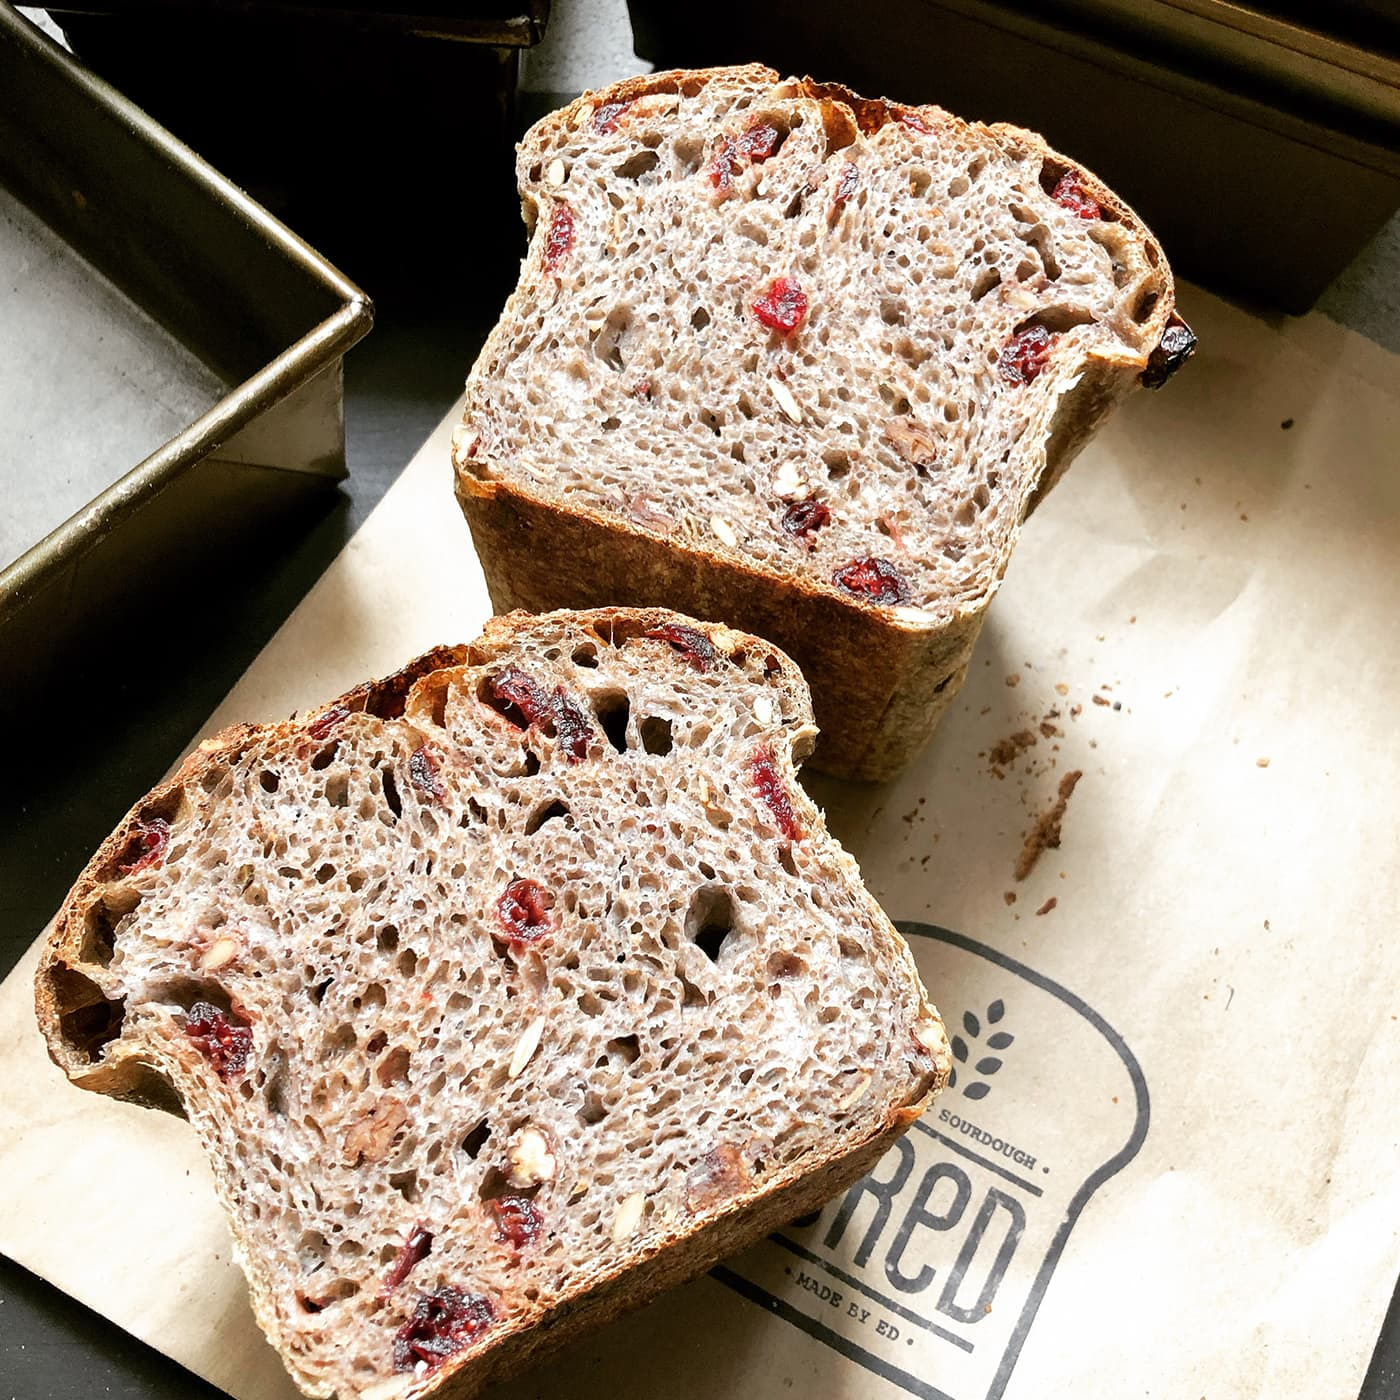 A loaf of bread sliced in two. There are cranberries and nuts insides the loaf.